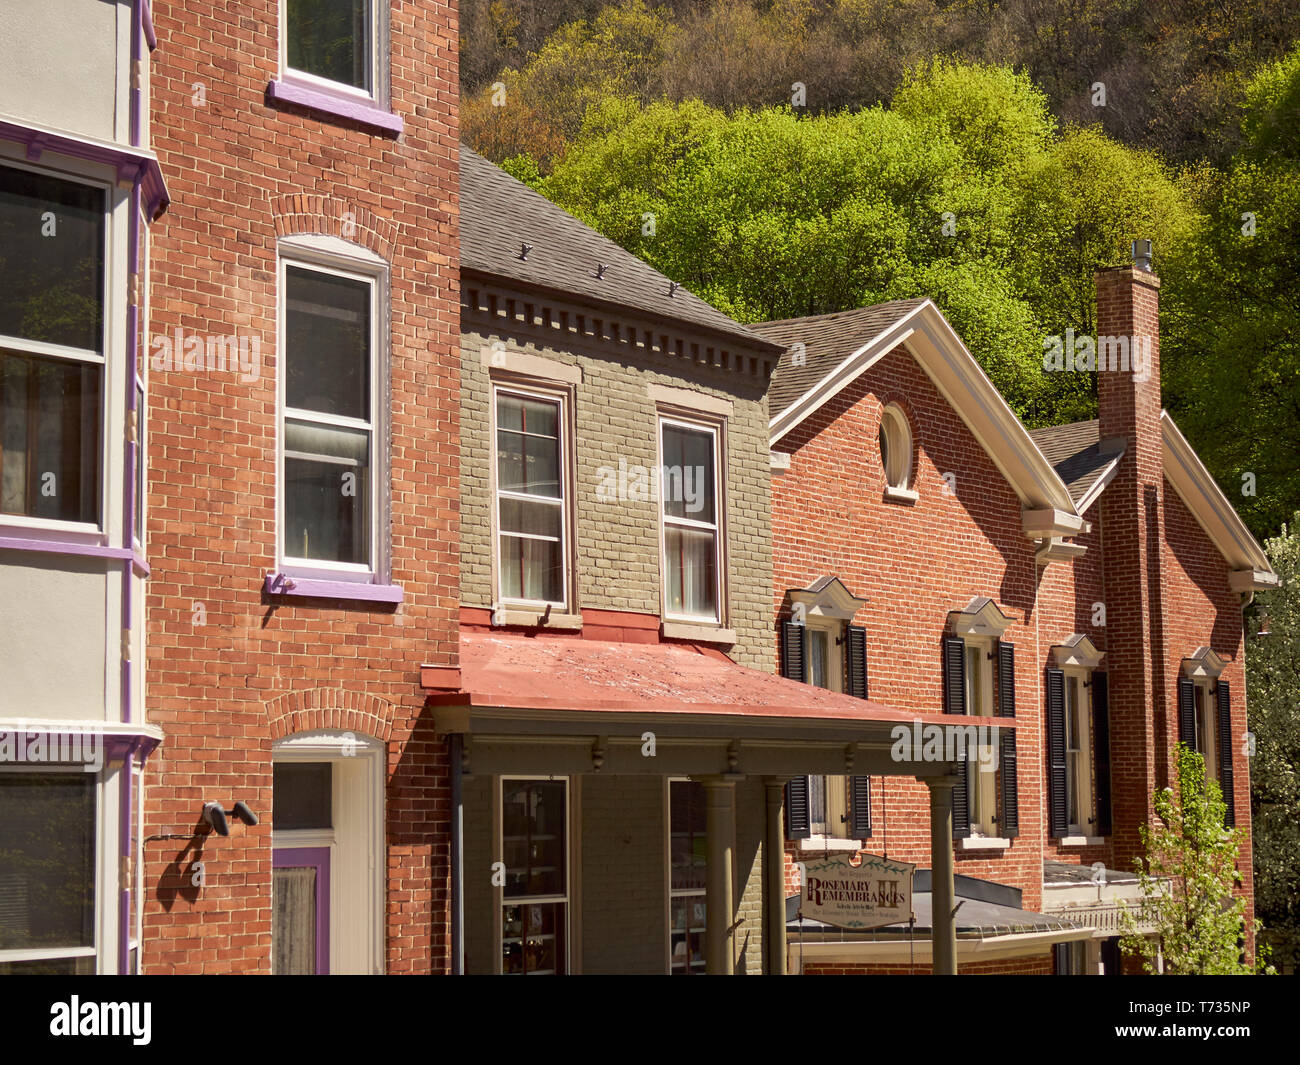 Row houses, sometimes called town houses, in the center of Jim Thorpe, Pennsylvania, USA - Stock Image